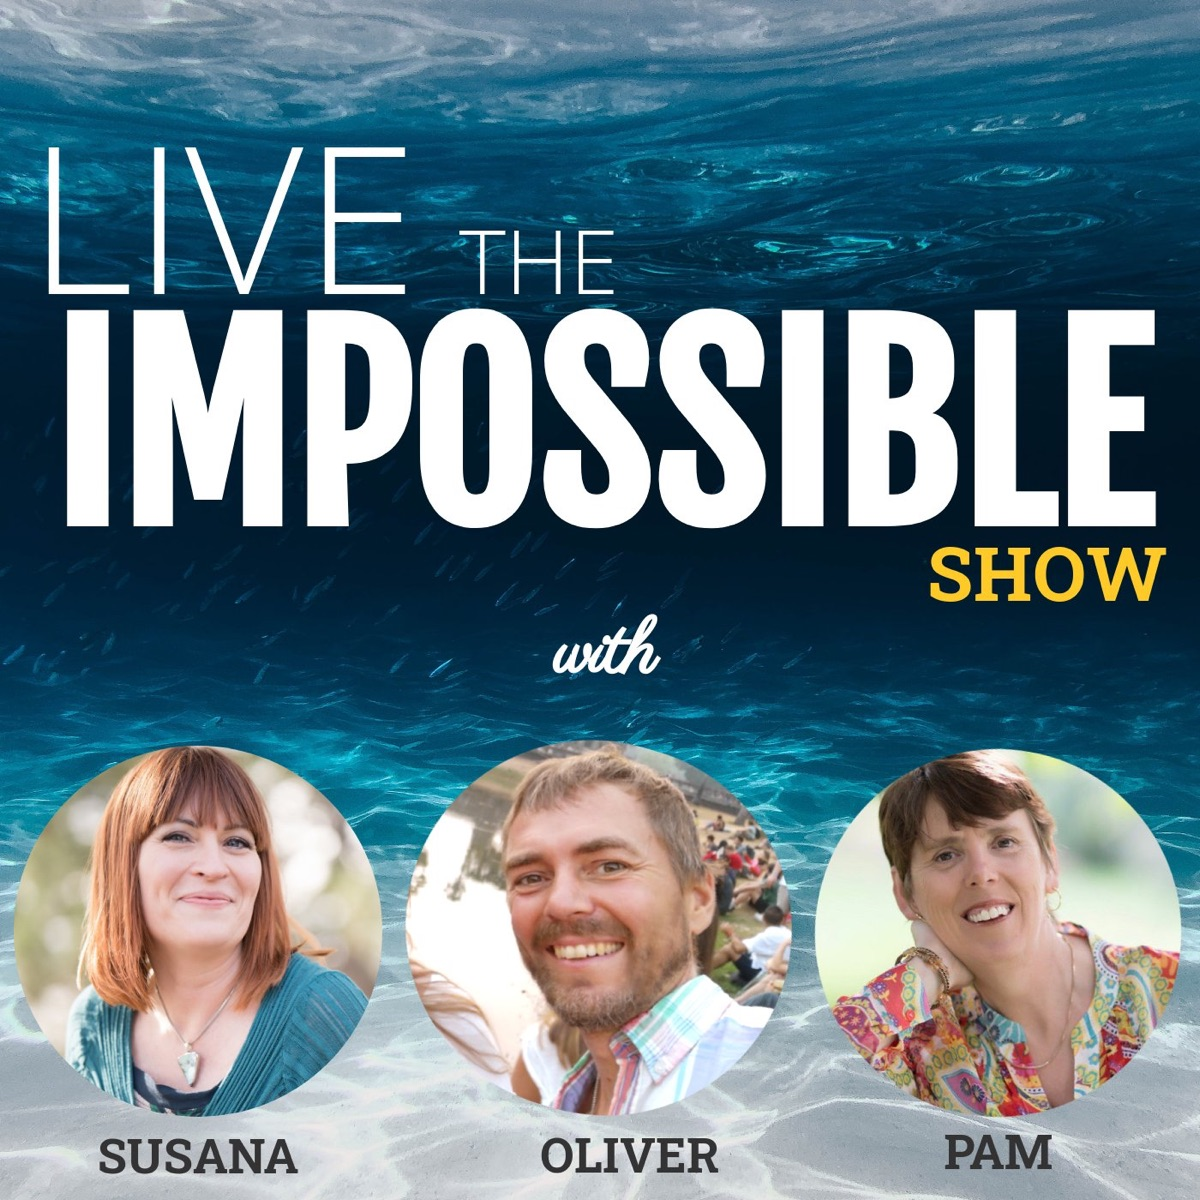 Live the Impossible Show